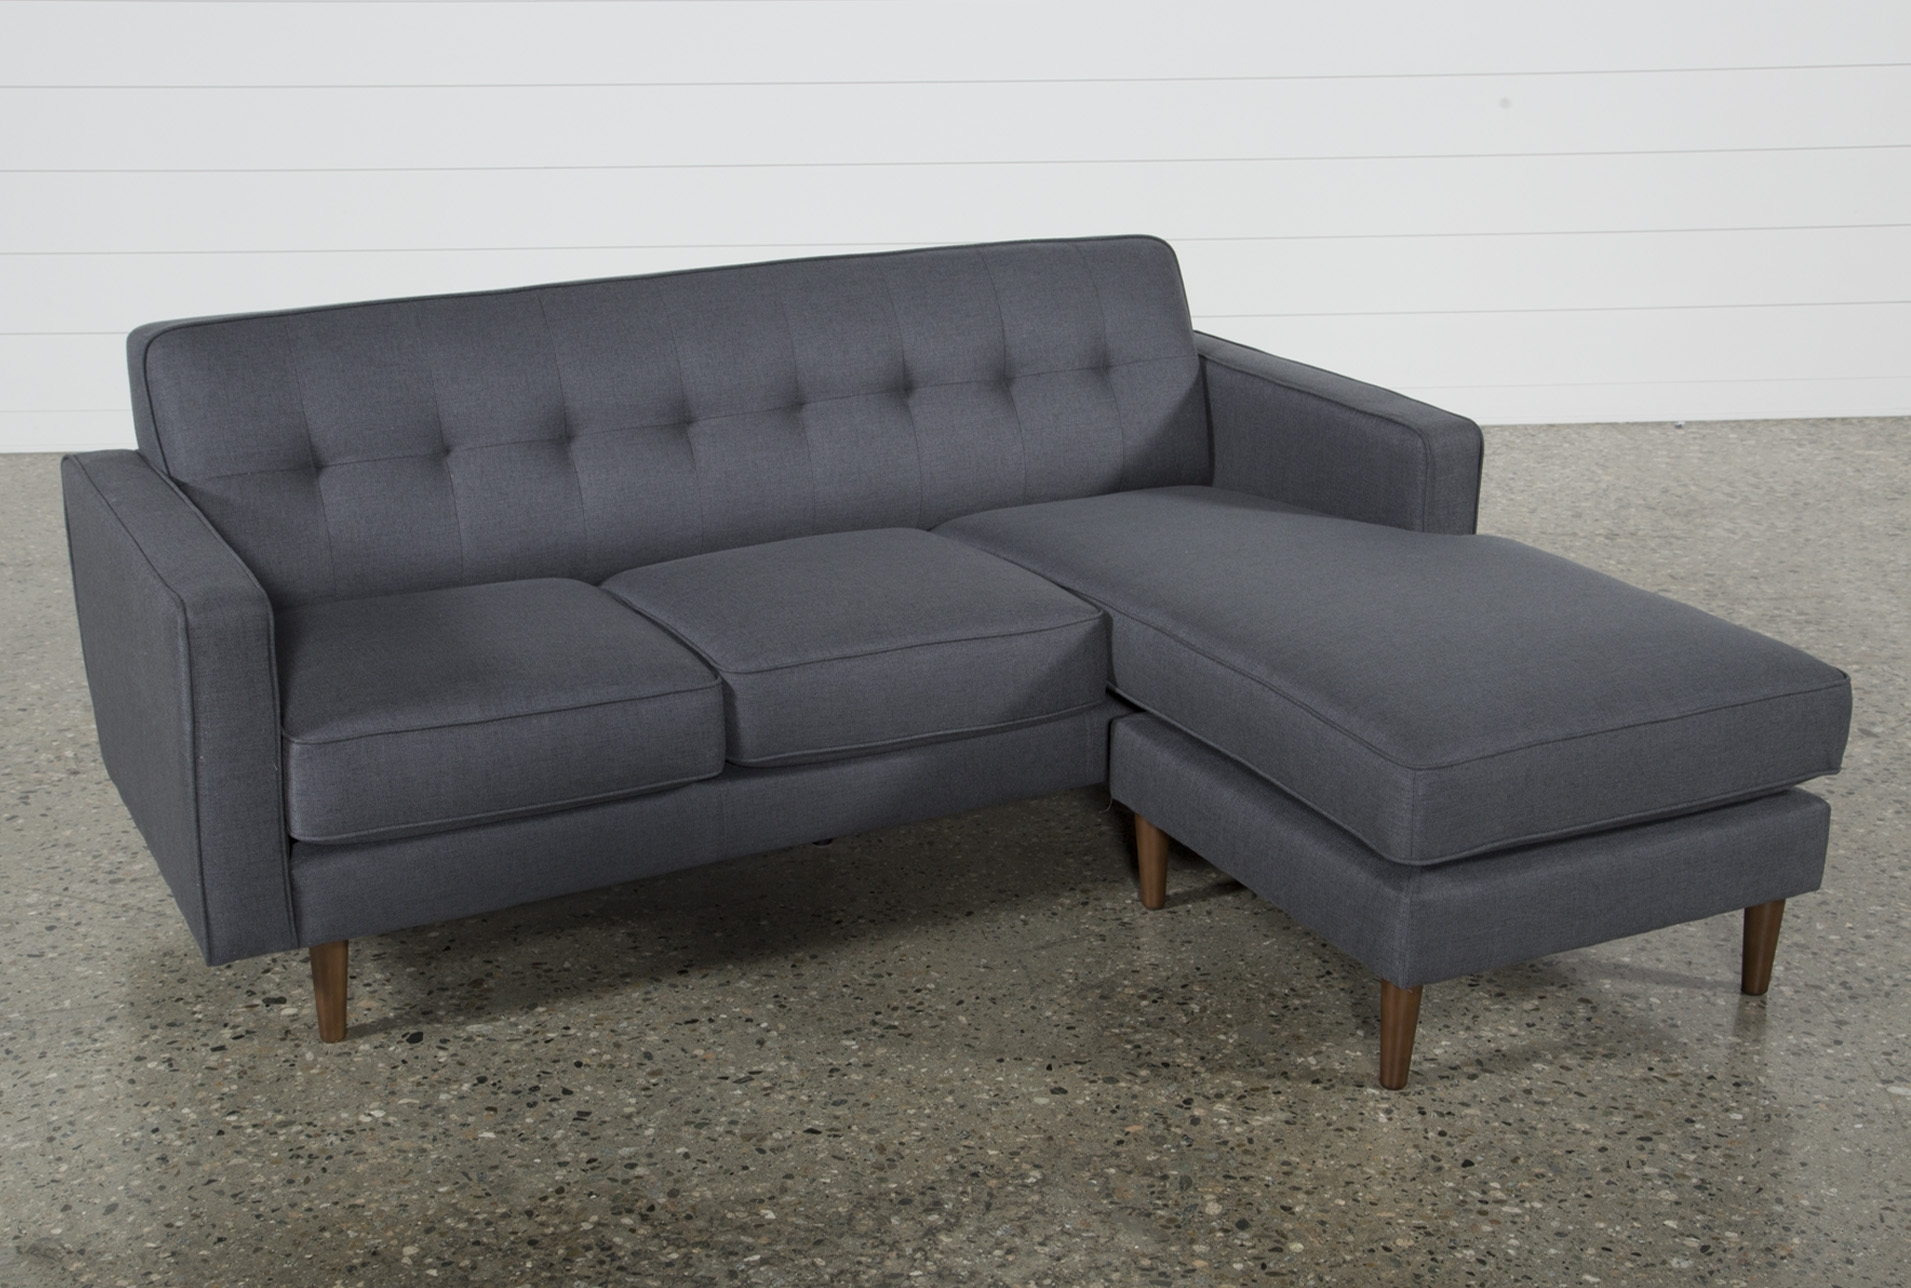 London Dark Grey Reversible Sofa Chaise | Products | Pinterest Pertaining To London Optical Reversible Sofa Chaise Sectionals (View 2 of 25)